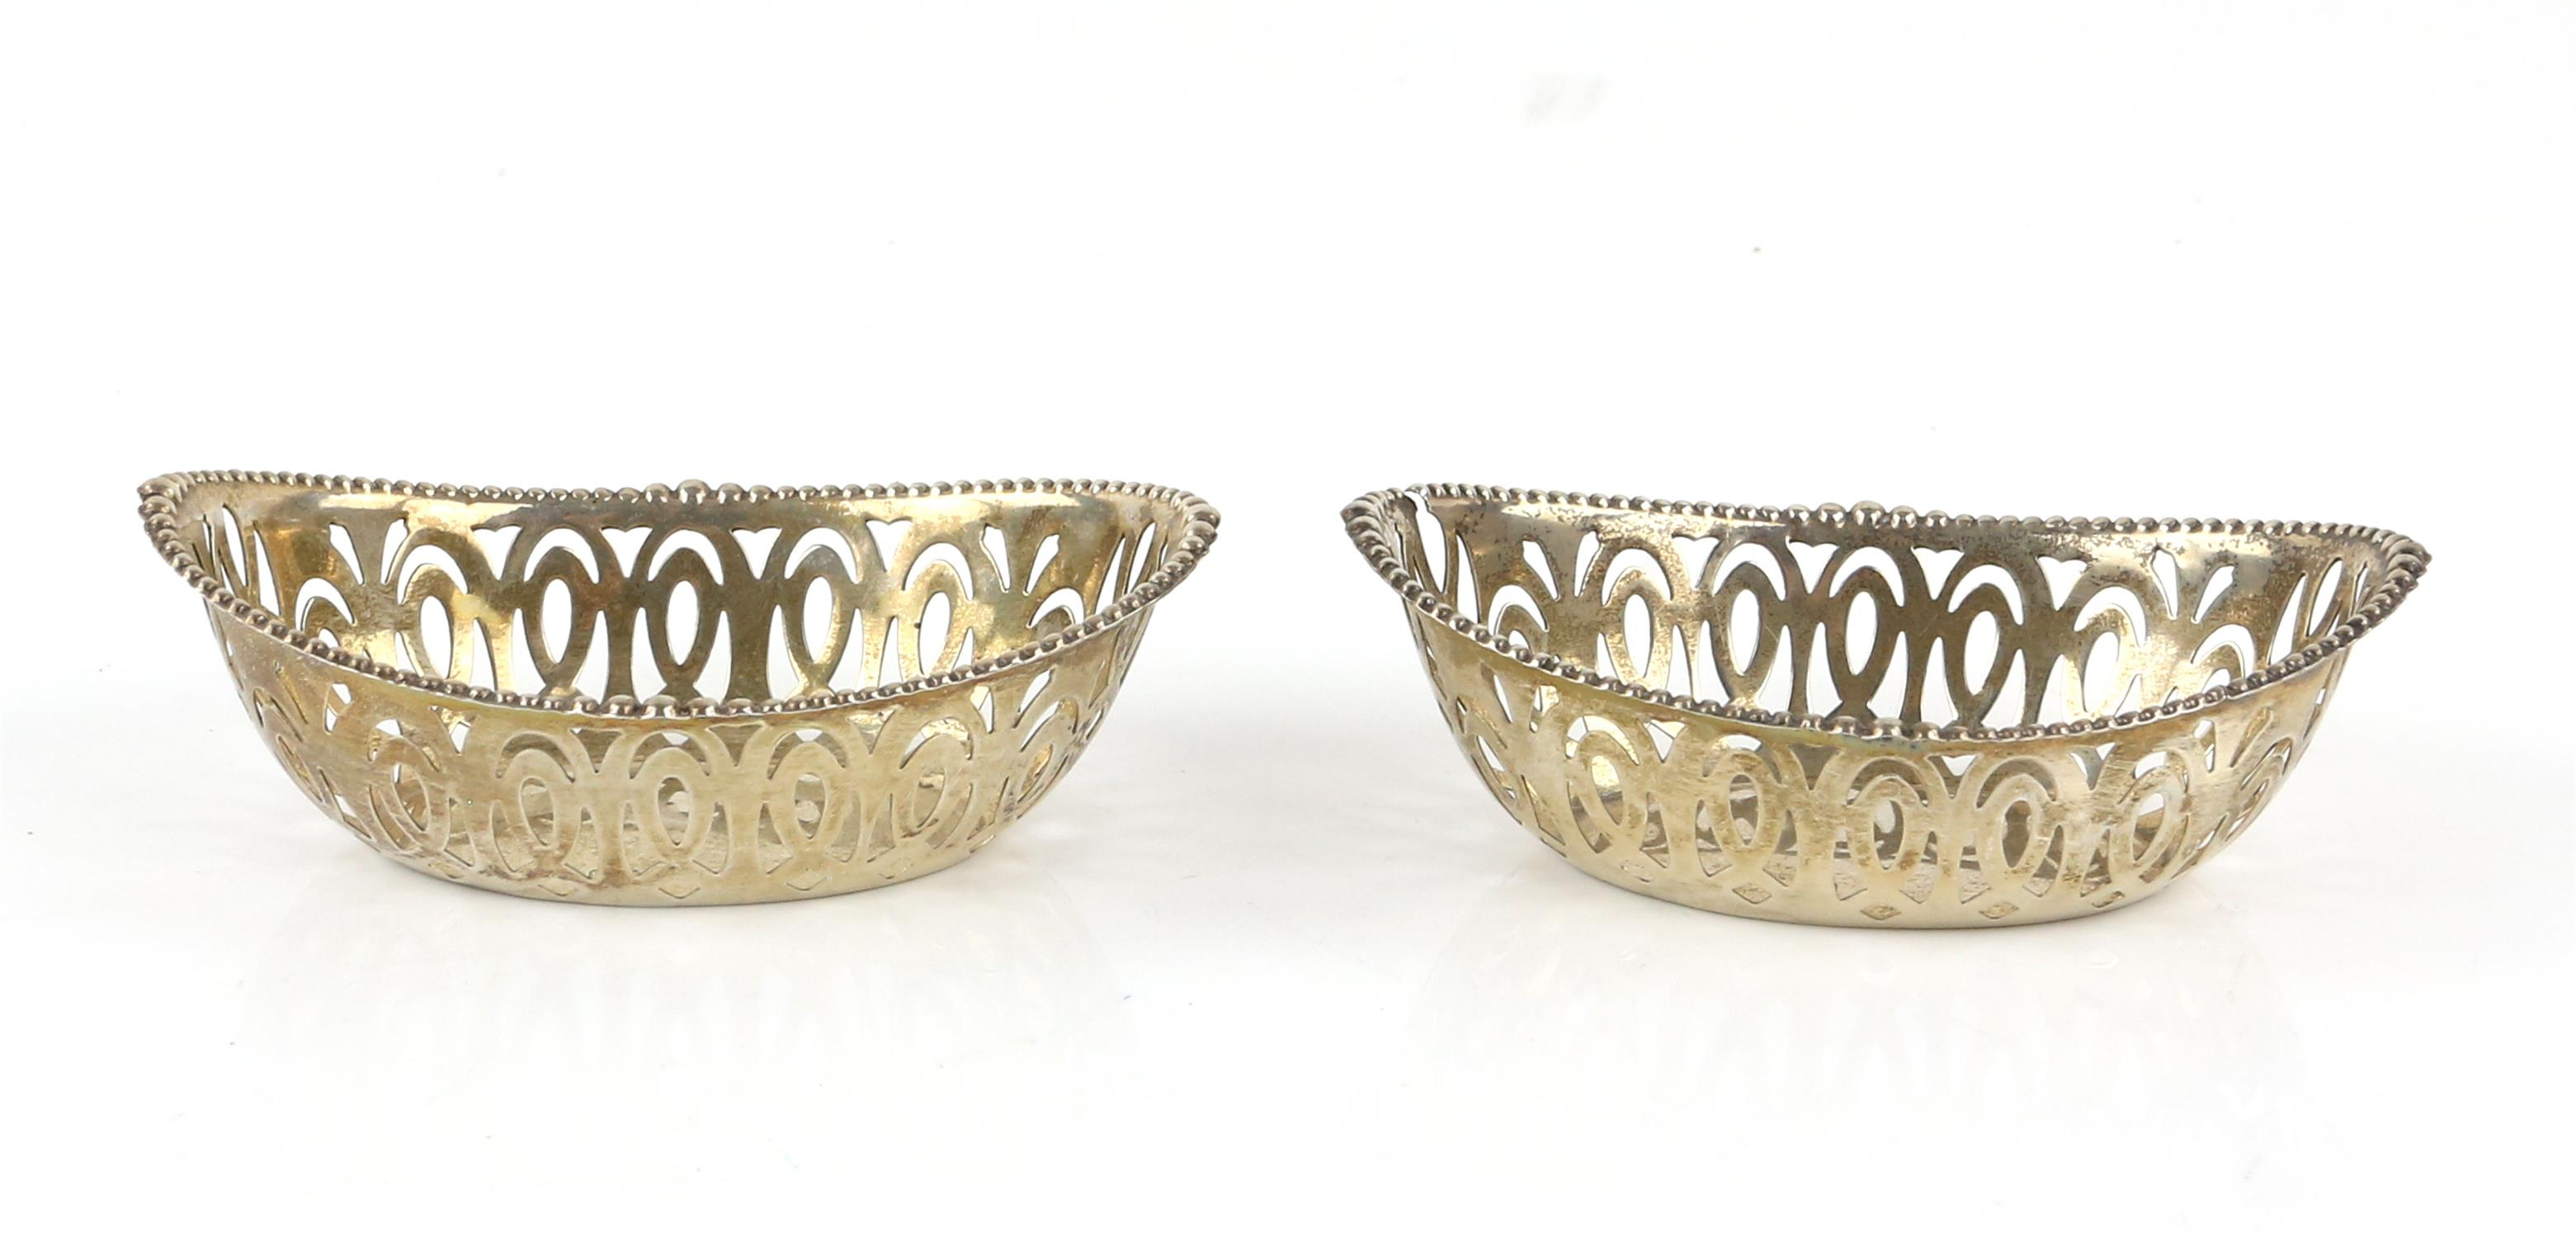 Pair of oval pierced silver bon-bon dishes, by Robert Pringle & Sons London 1927, - Image 7 of 11